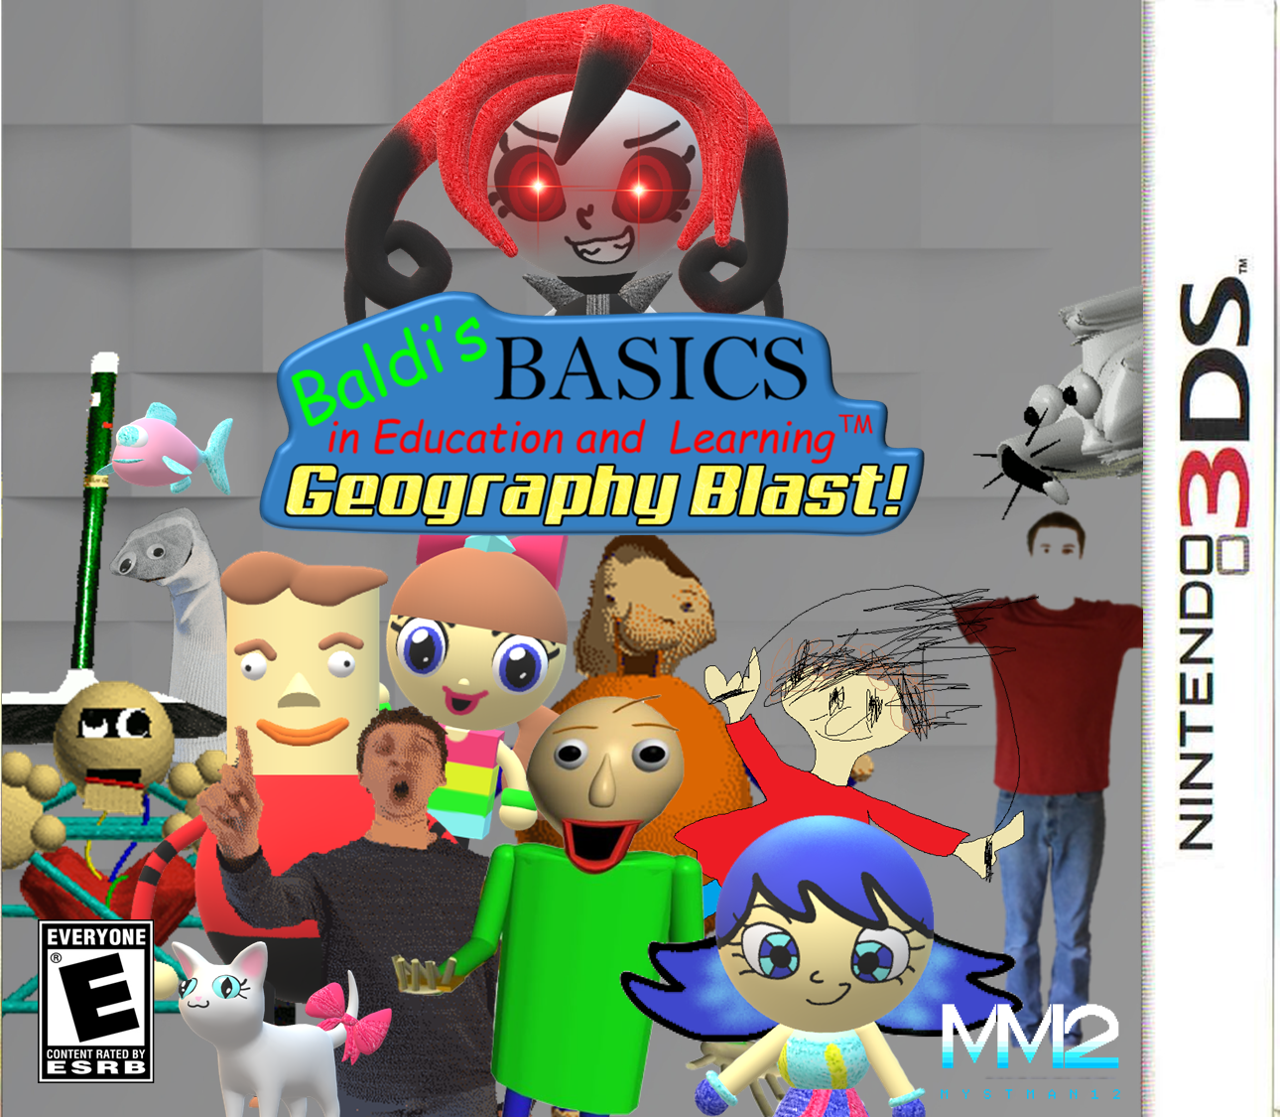 Baldi's Basics in Education and Learning: Geography Blast!